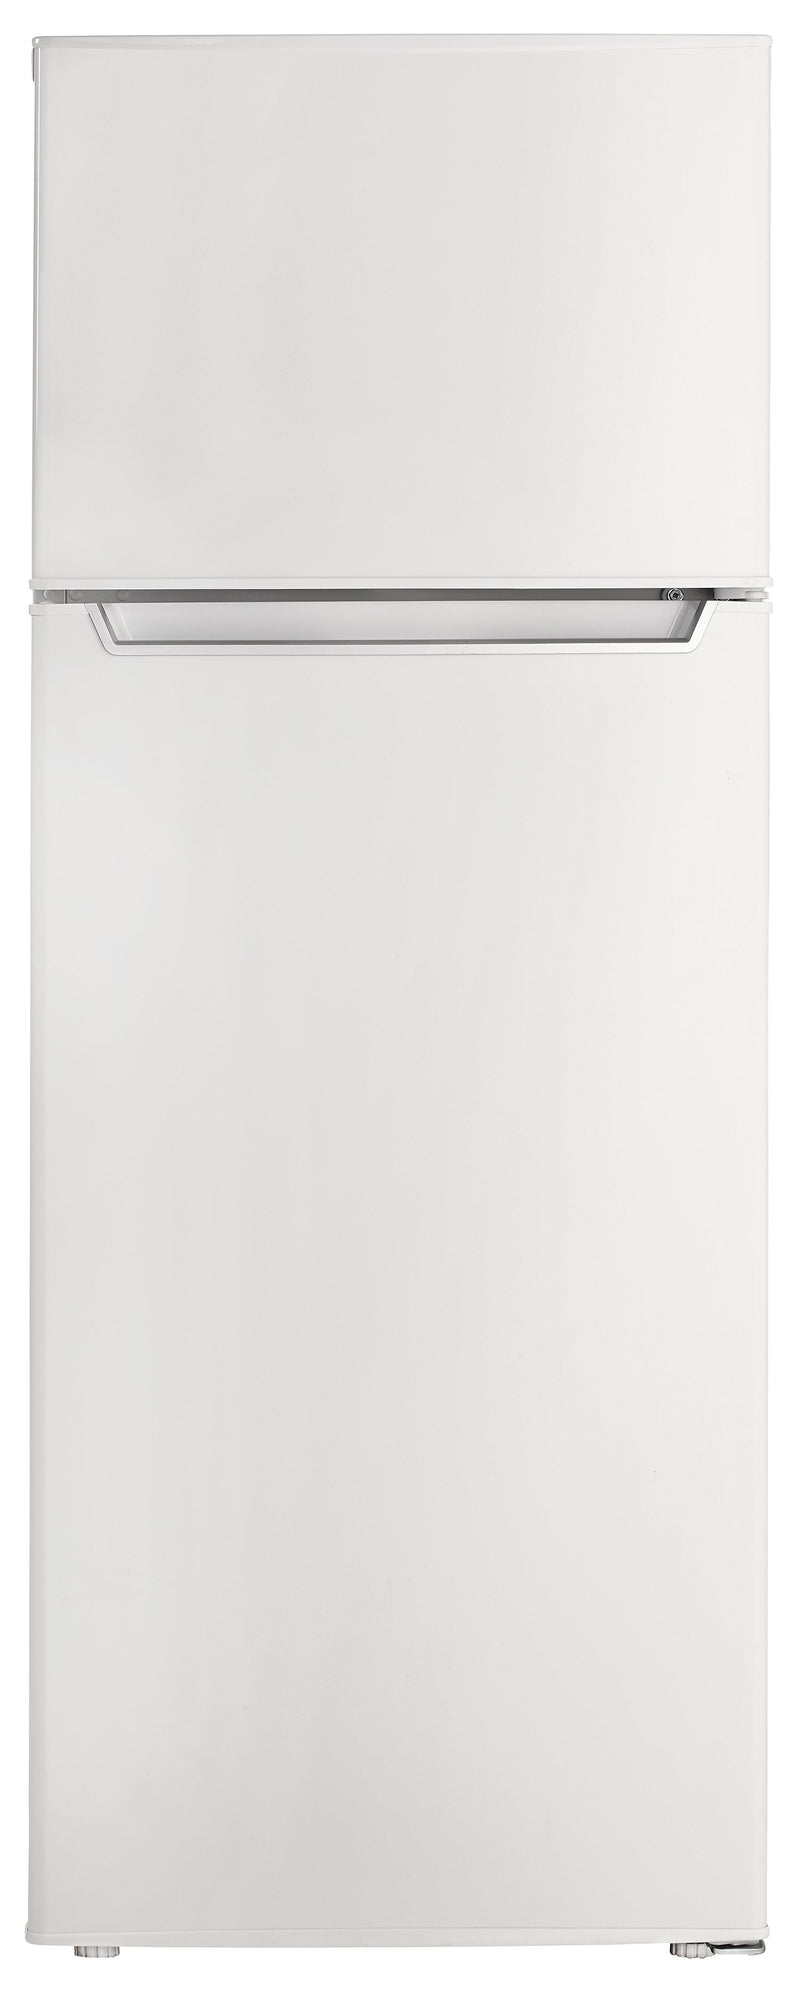 Danby White Top-Freezer Refrigerator (7.3 Cu. Ft) - DPF073C2WDB